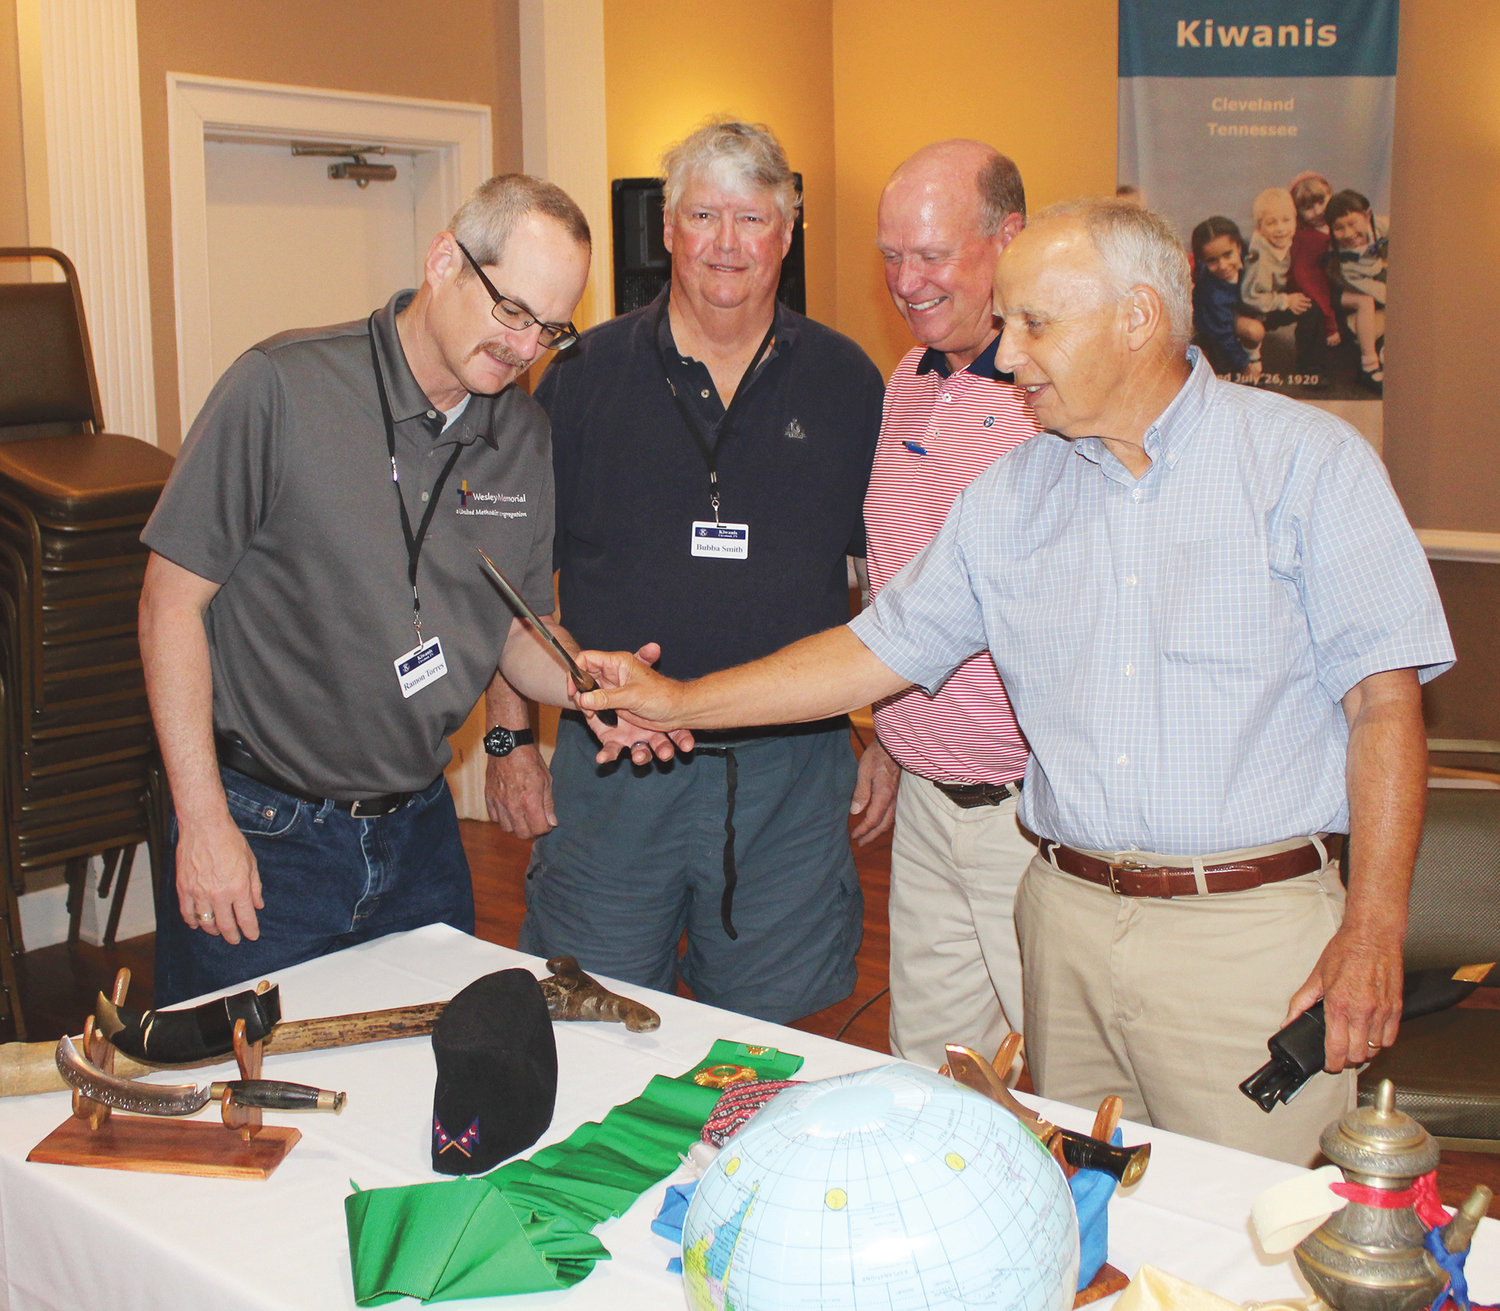 CLEVELAND KIWANIS Club President Ramon Torres, left, checks out a knife brought back from rural Nepal during a Far East mission trip by members of First Baptist Church. Others viewing the keepsake are Program Chairman Bubba Smith, second from left, Jim Gibson, second from right, and Dave Gregory, both with First Baptist.